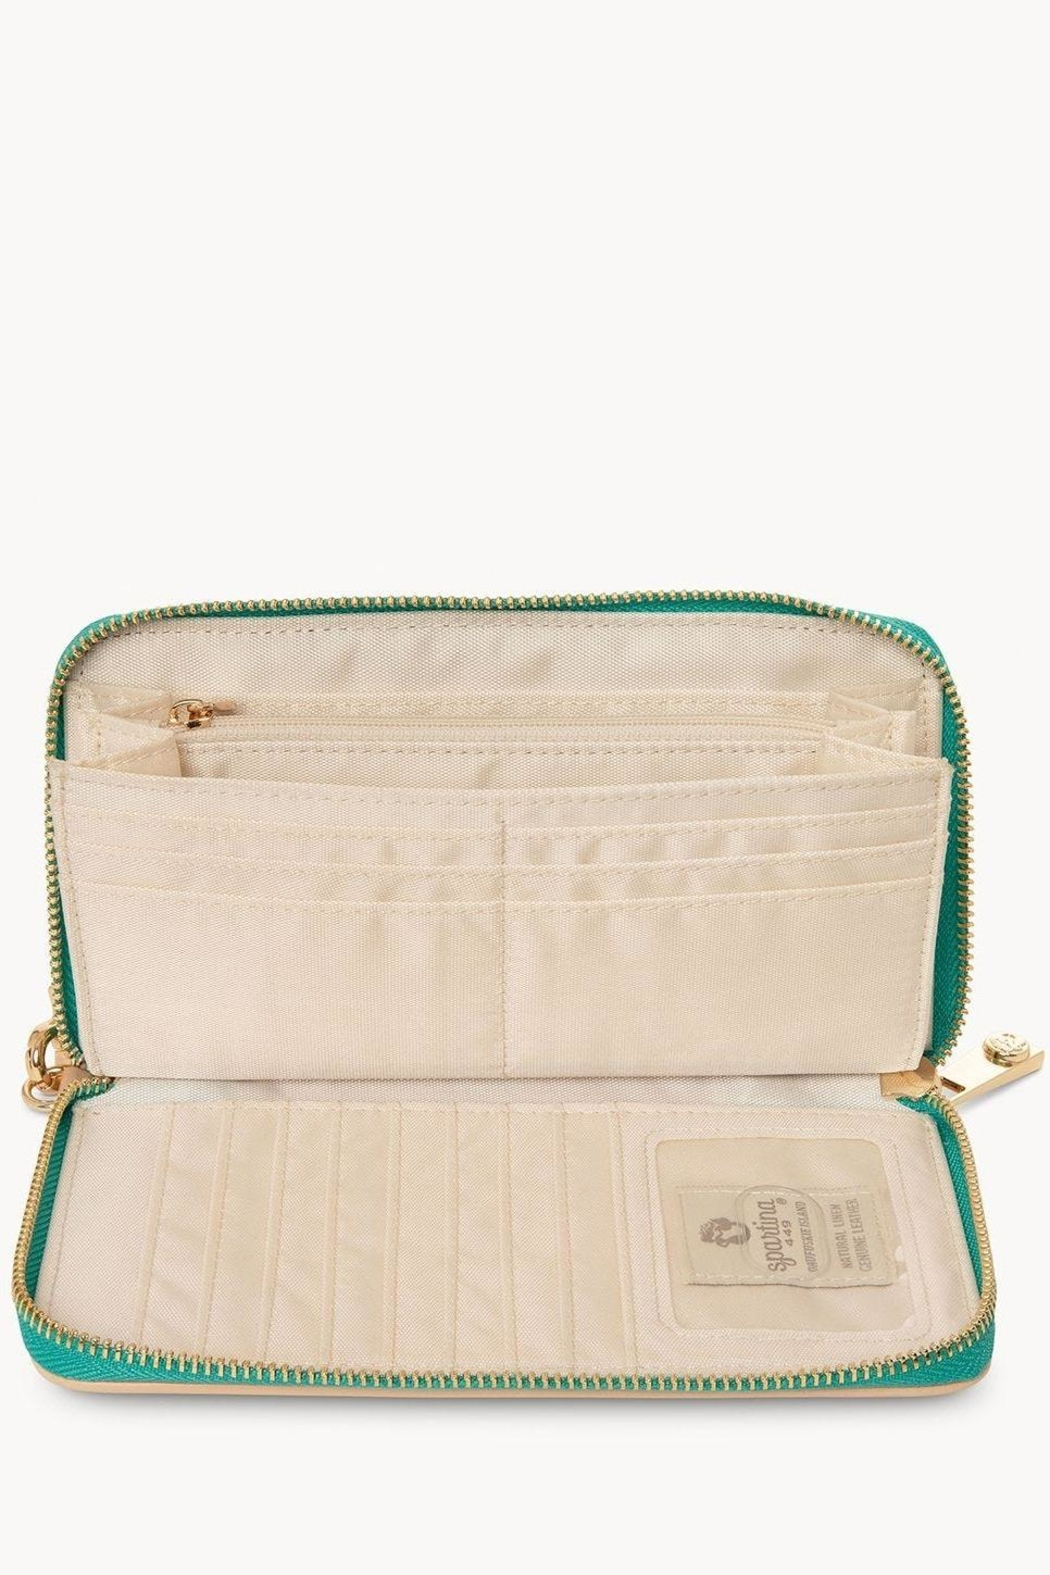 Spartina 449 Moreland Embroidered Wallet - Front Full Image